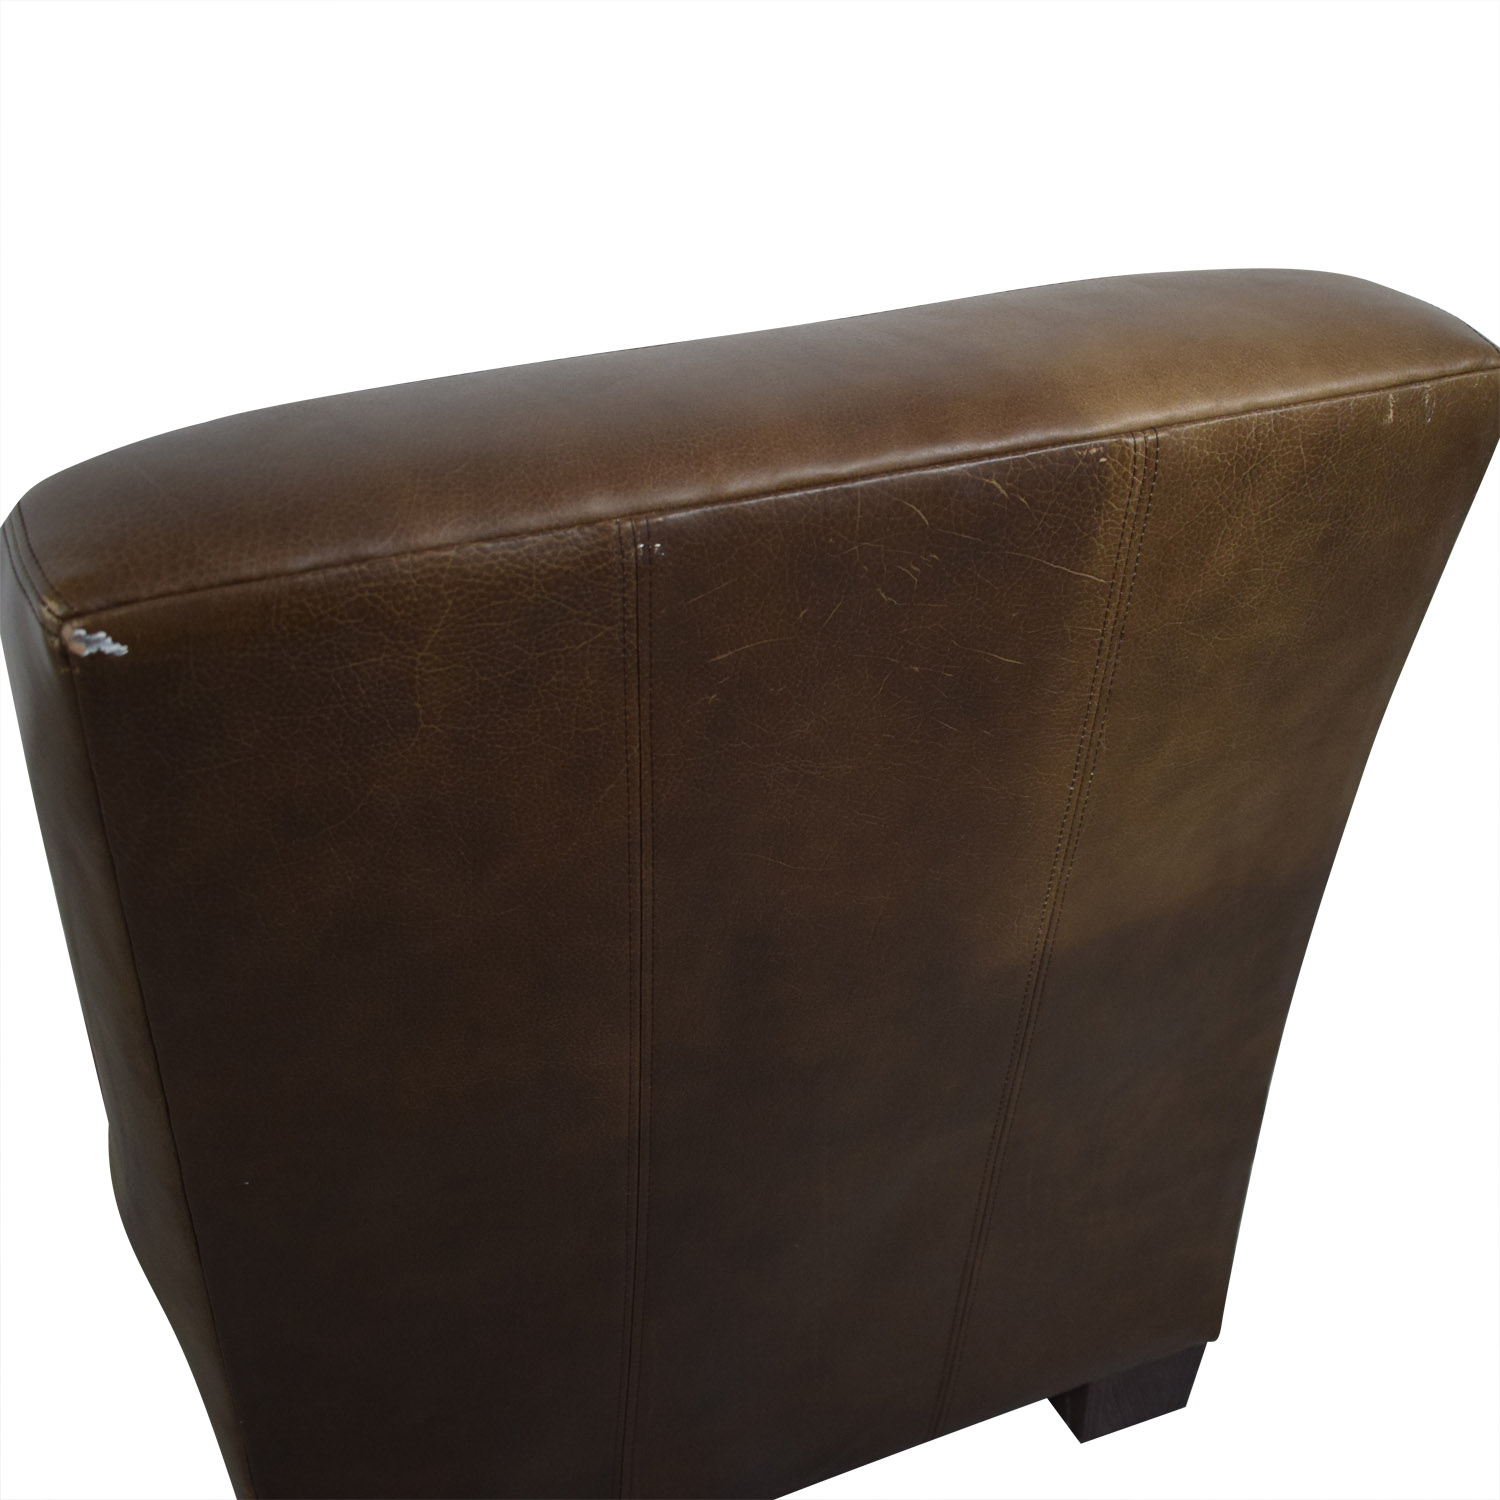 Pottery Barn Pottery Barn Leather Lounge Chair